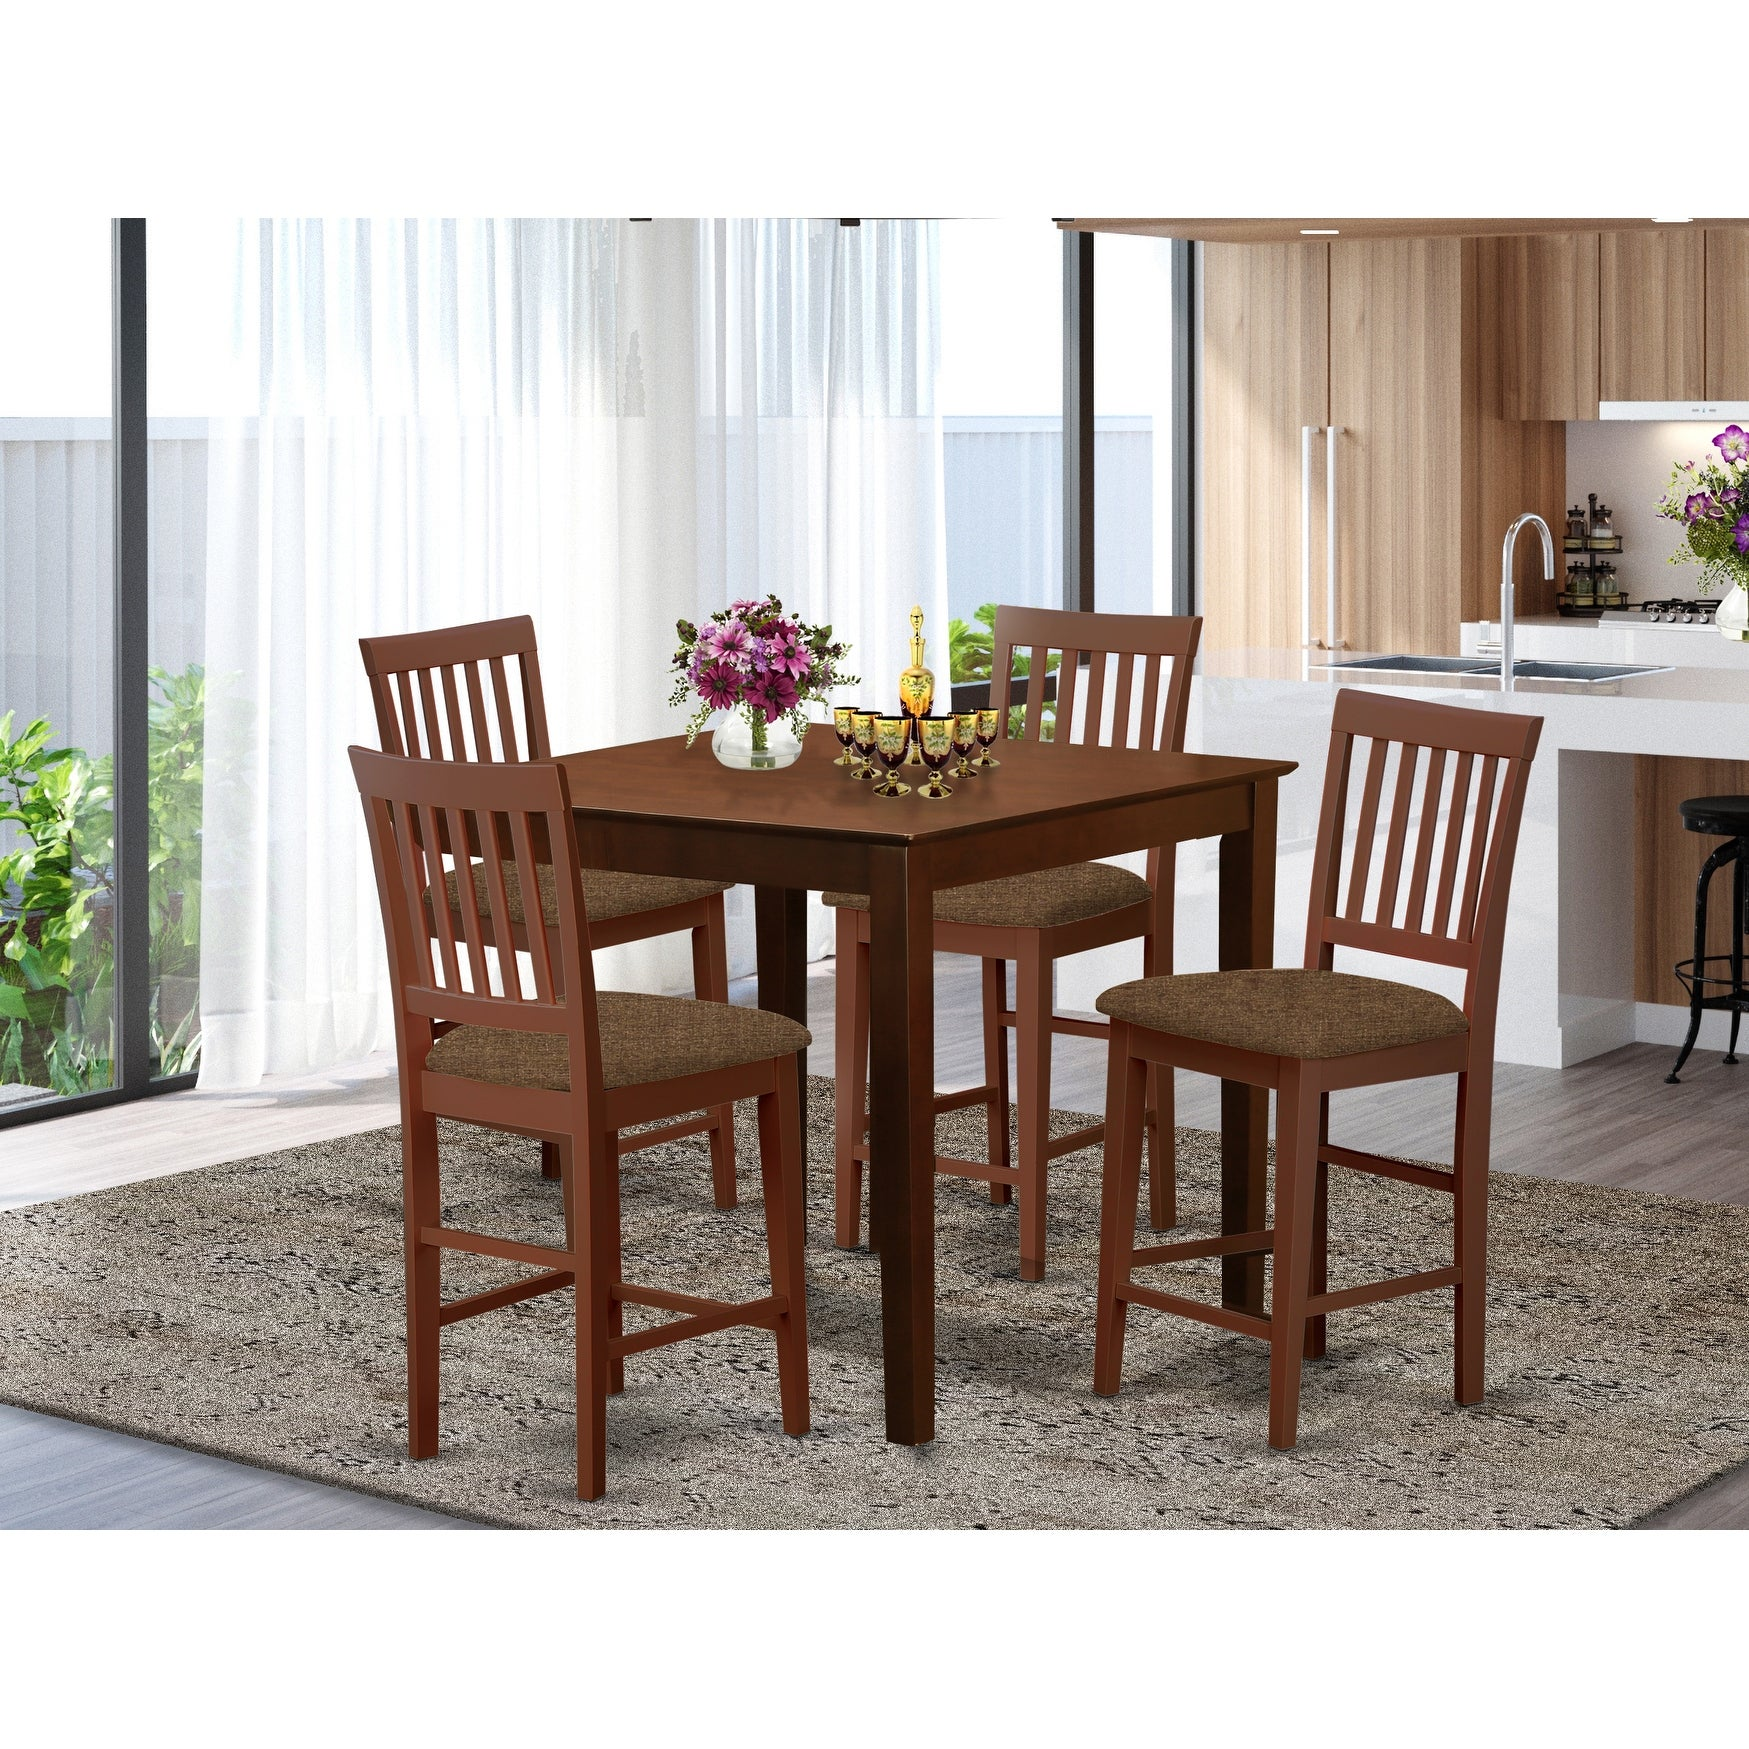 Picture of: Shop Black Friday Deals On Mahogany Square Counter Height Table And 4 Counter Height Chairs 5 Piece Dining Set On Sale Overstock 10201132